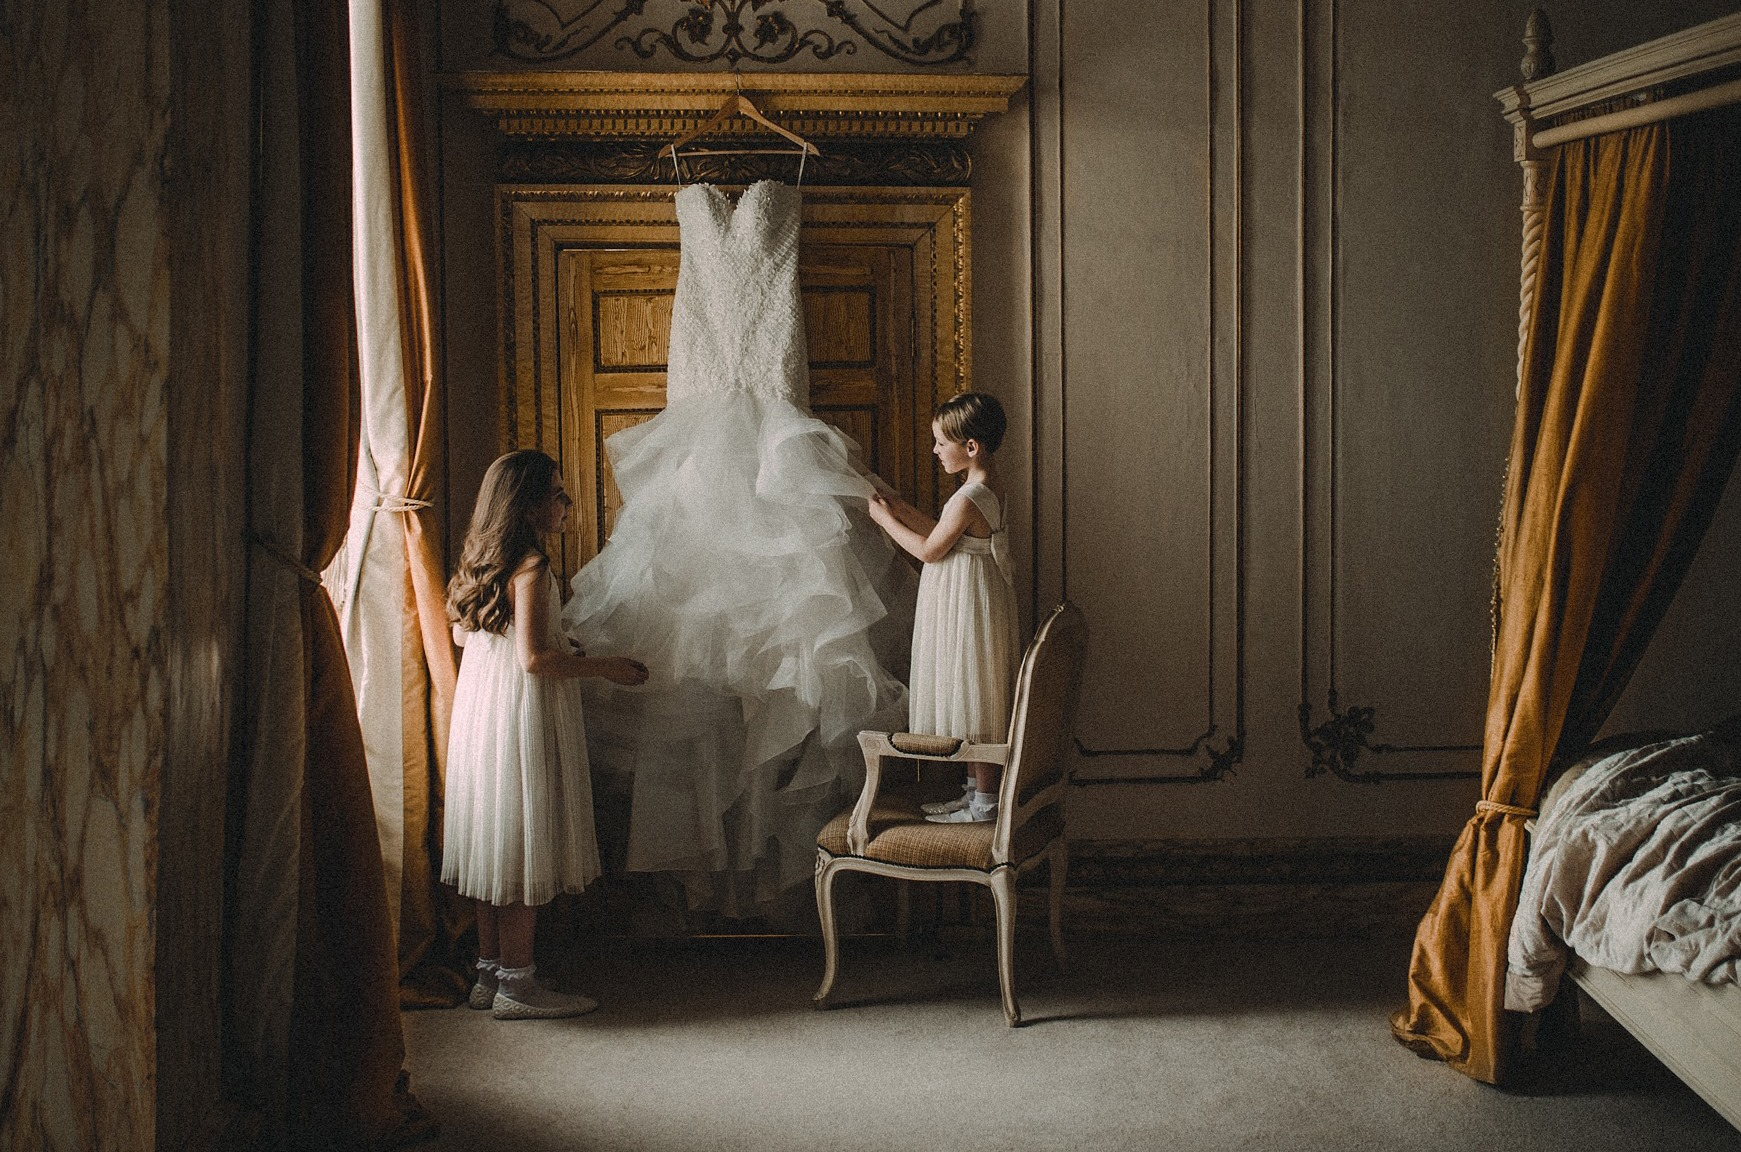 Two children looking at the brides wedding dress| Wedding picture| fairy tale wedding